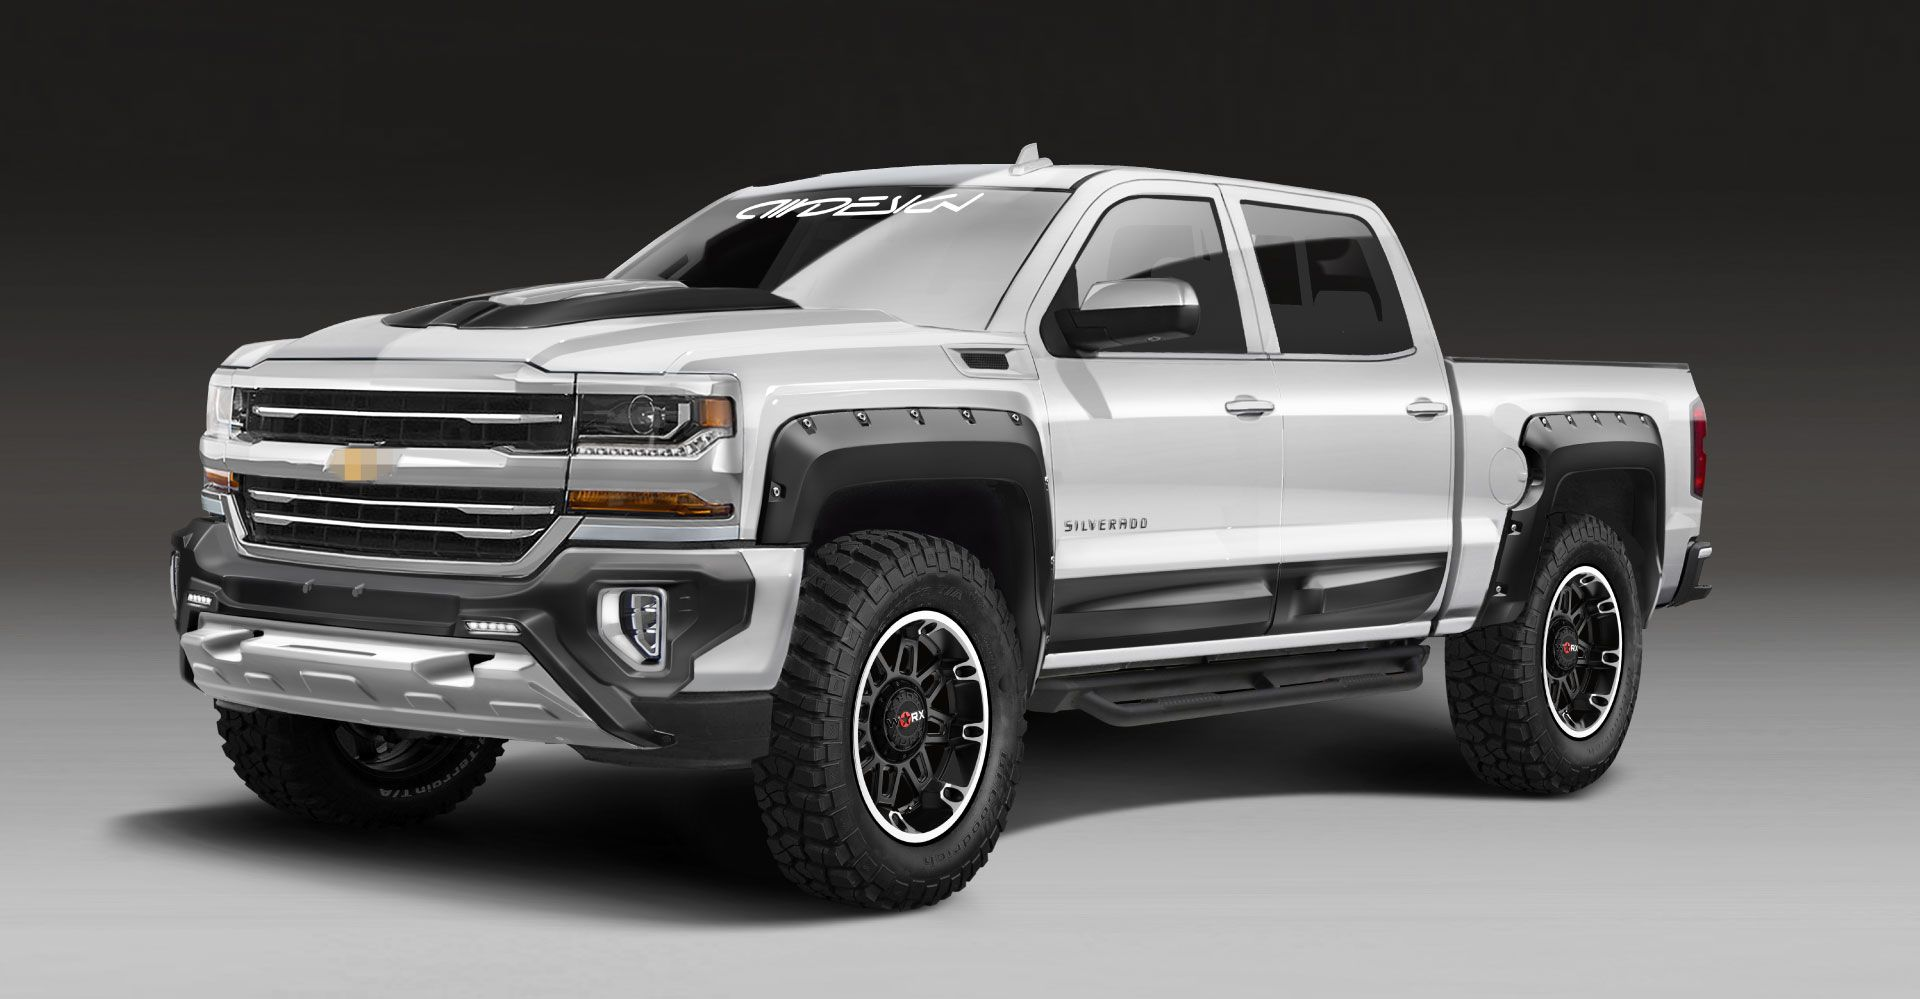 Chevrolet Silverado Air Design Usa The Ultimate Accessories Collection For Off Road And Street Chevrolet Silverado Chevrolet Silverado